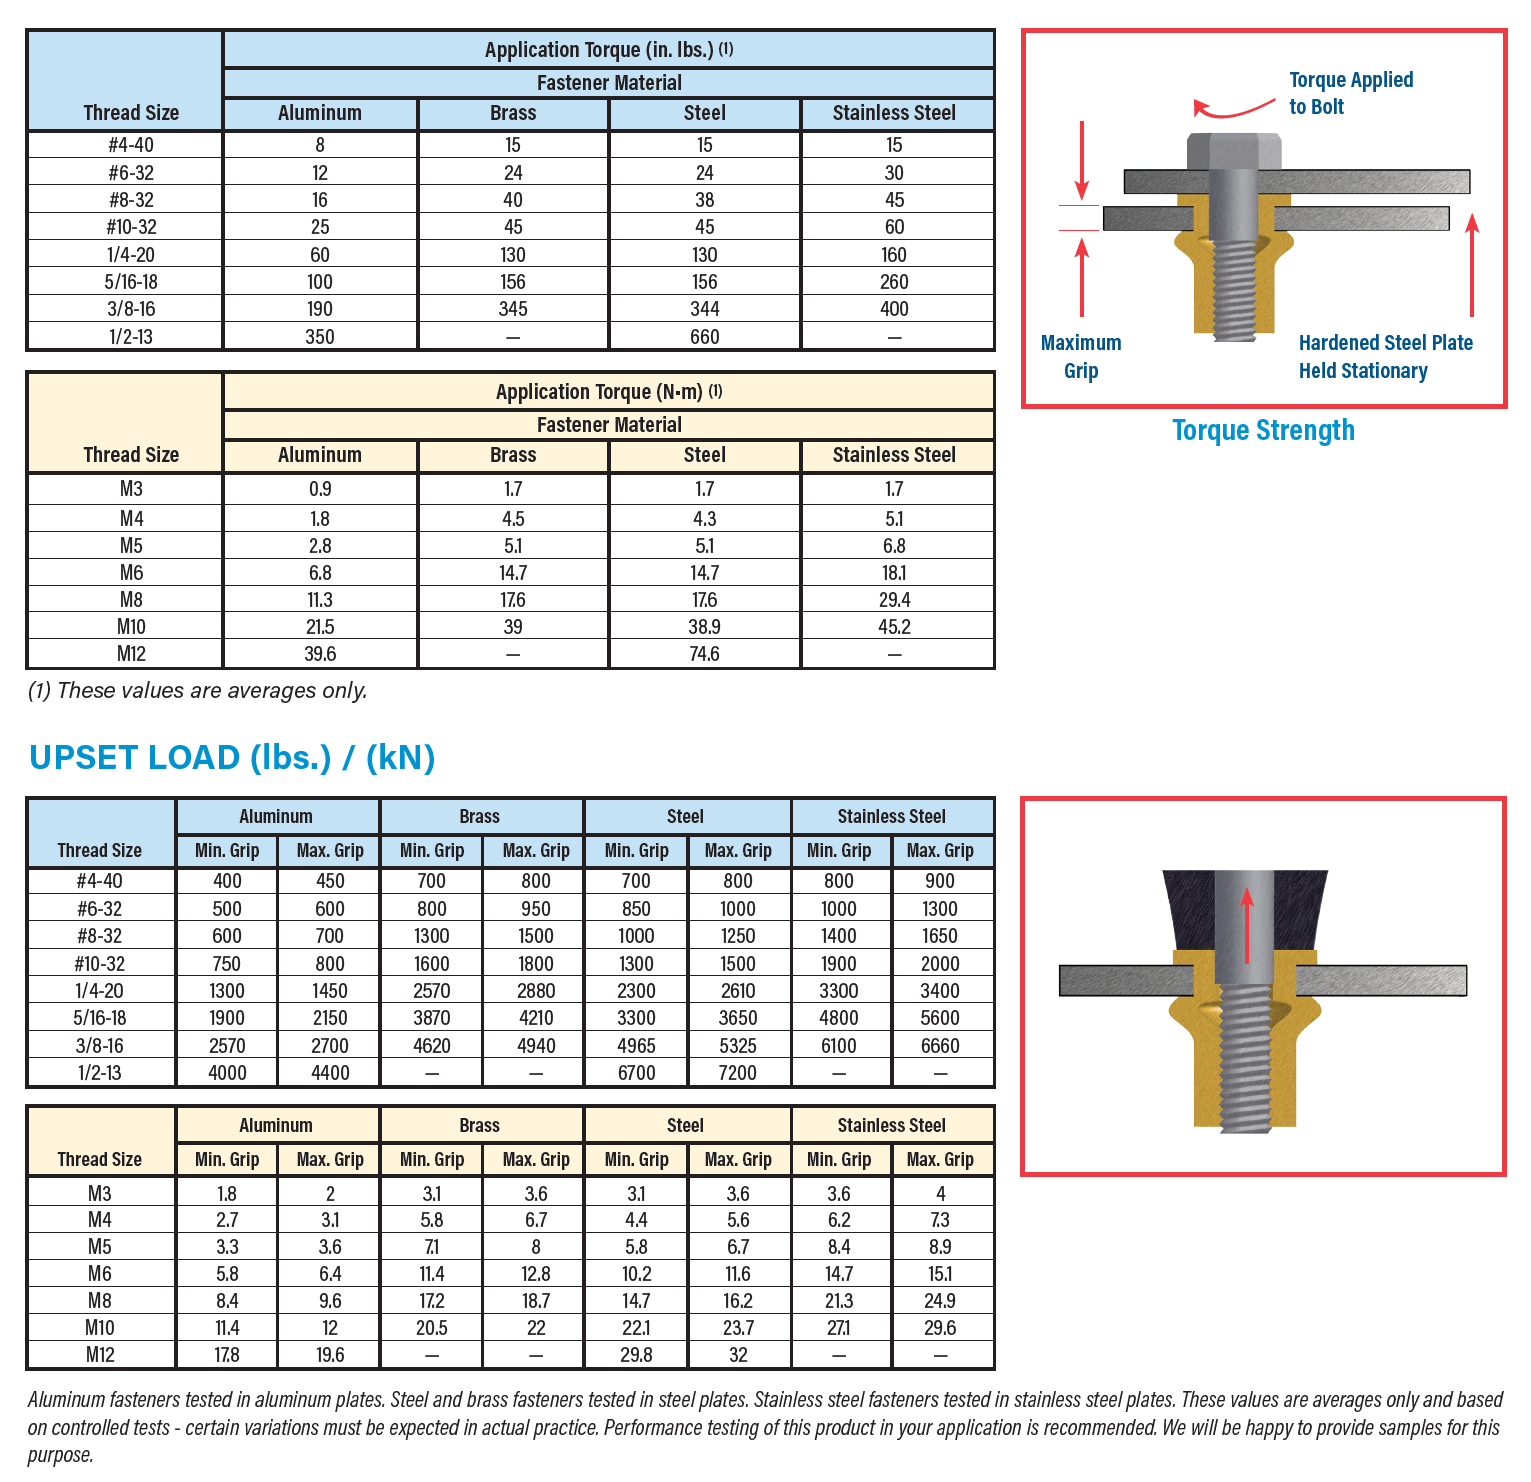 Atlas MaxTite® PERFORMANCE DATA TORQUE STRENGTH DATA - TORQUE-AXIAL LOAD RELATIONSHIP